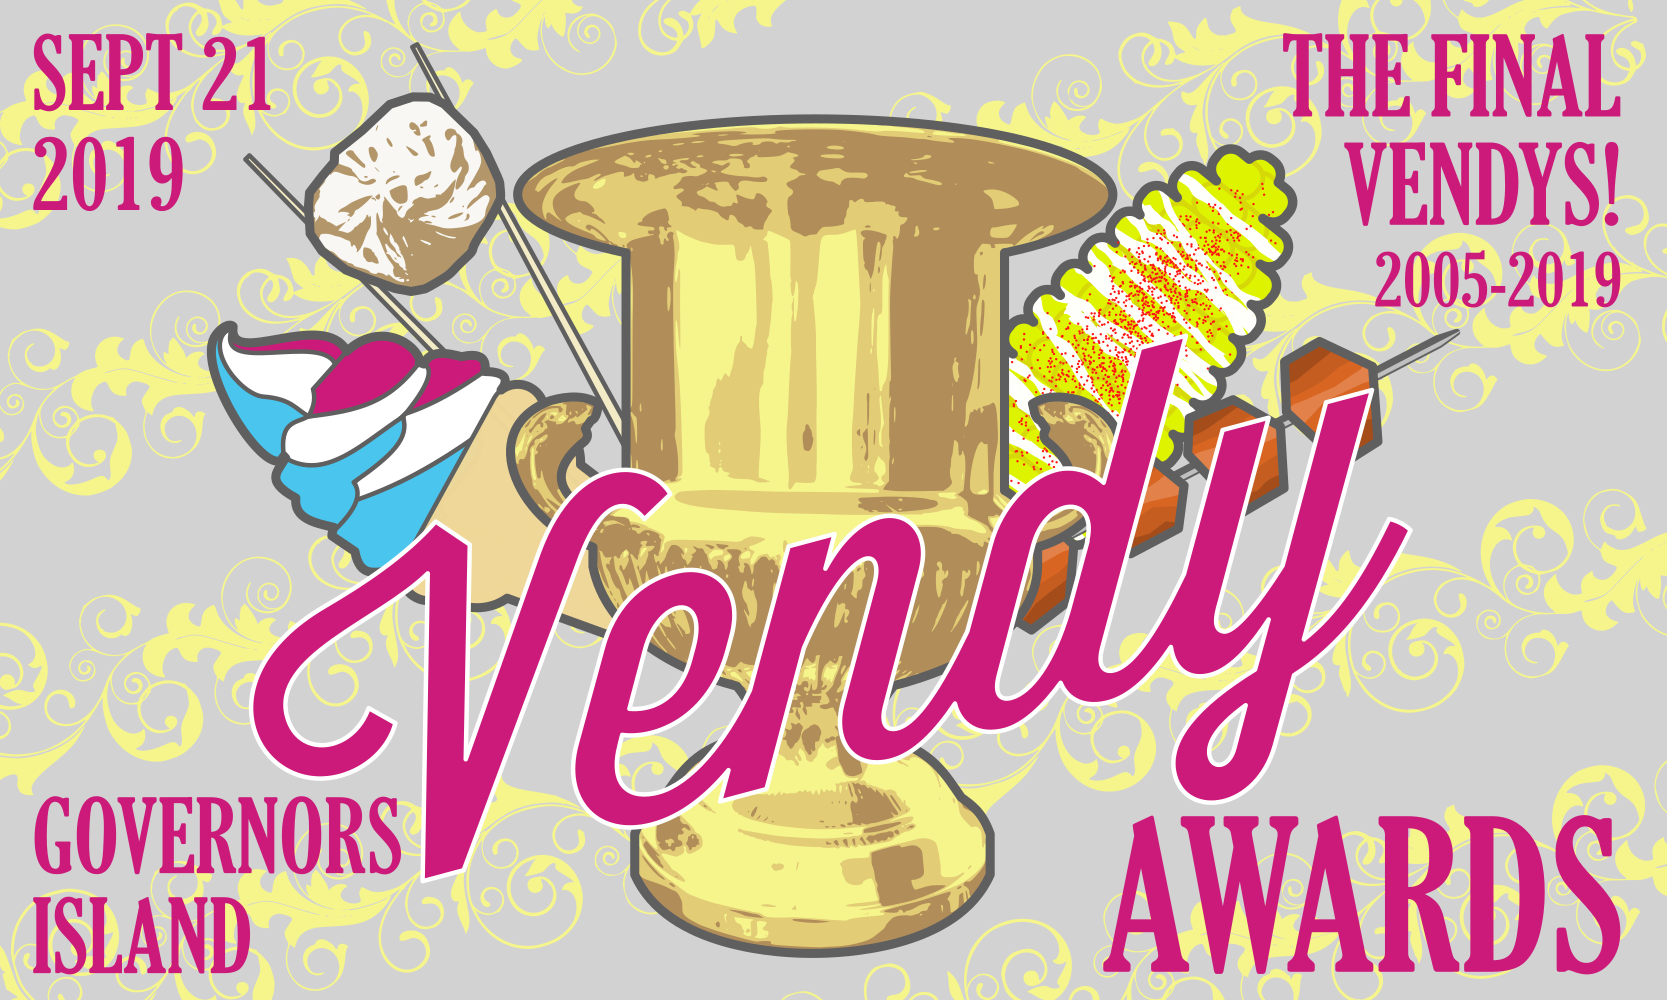 The Final Vendy Awards Announce Vendor Lineup